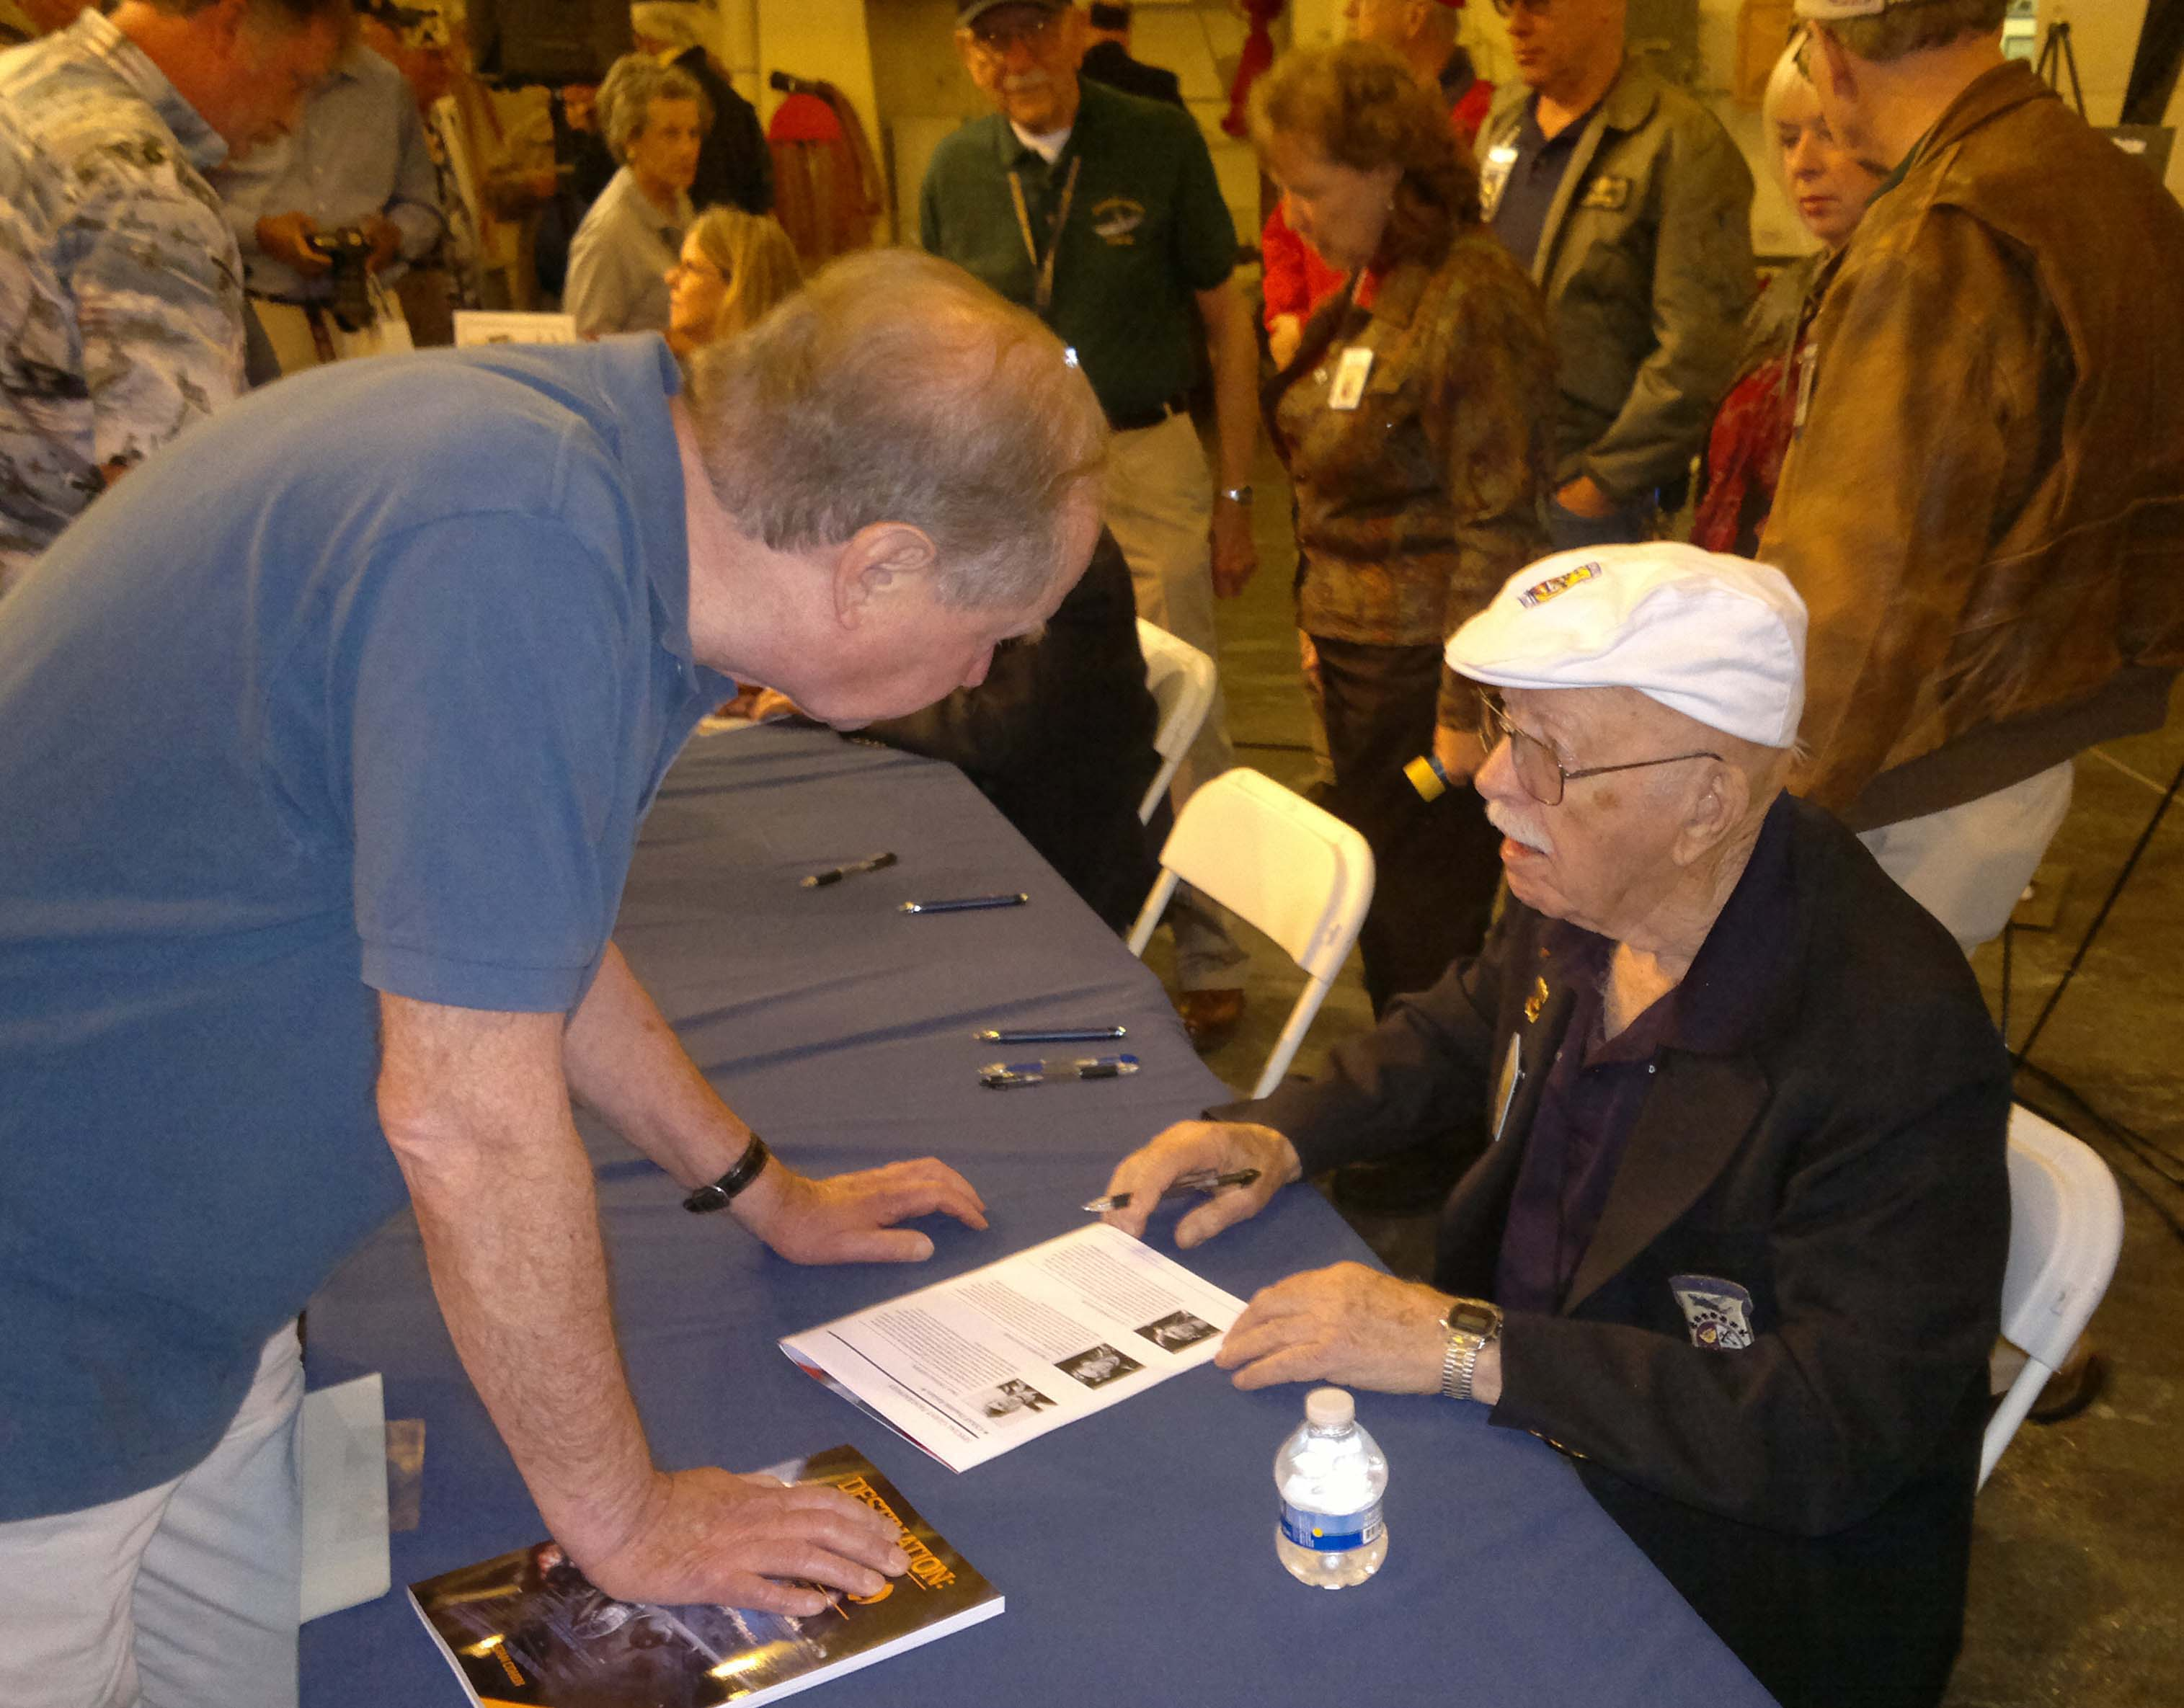 File photo Edward Saylor, right, signs autographs at the Doolittle Raid commemoration event aboard USS Hornet in 2012. Saylor flew aboard an aircraft commanded by Lieutenant Donald G. Smith in the daring raid over Japan on Nov. 12, 1942. Saylor is one of the four surviving Doolittle Raiders.